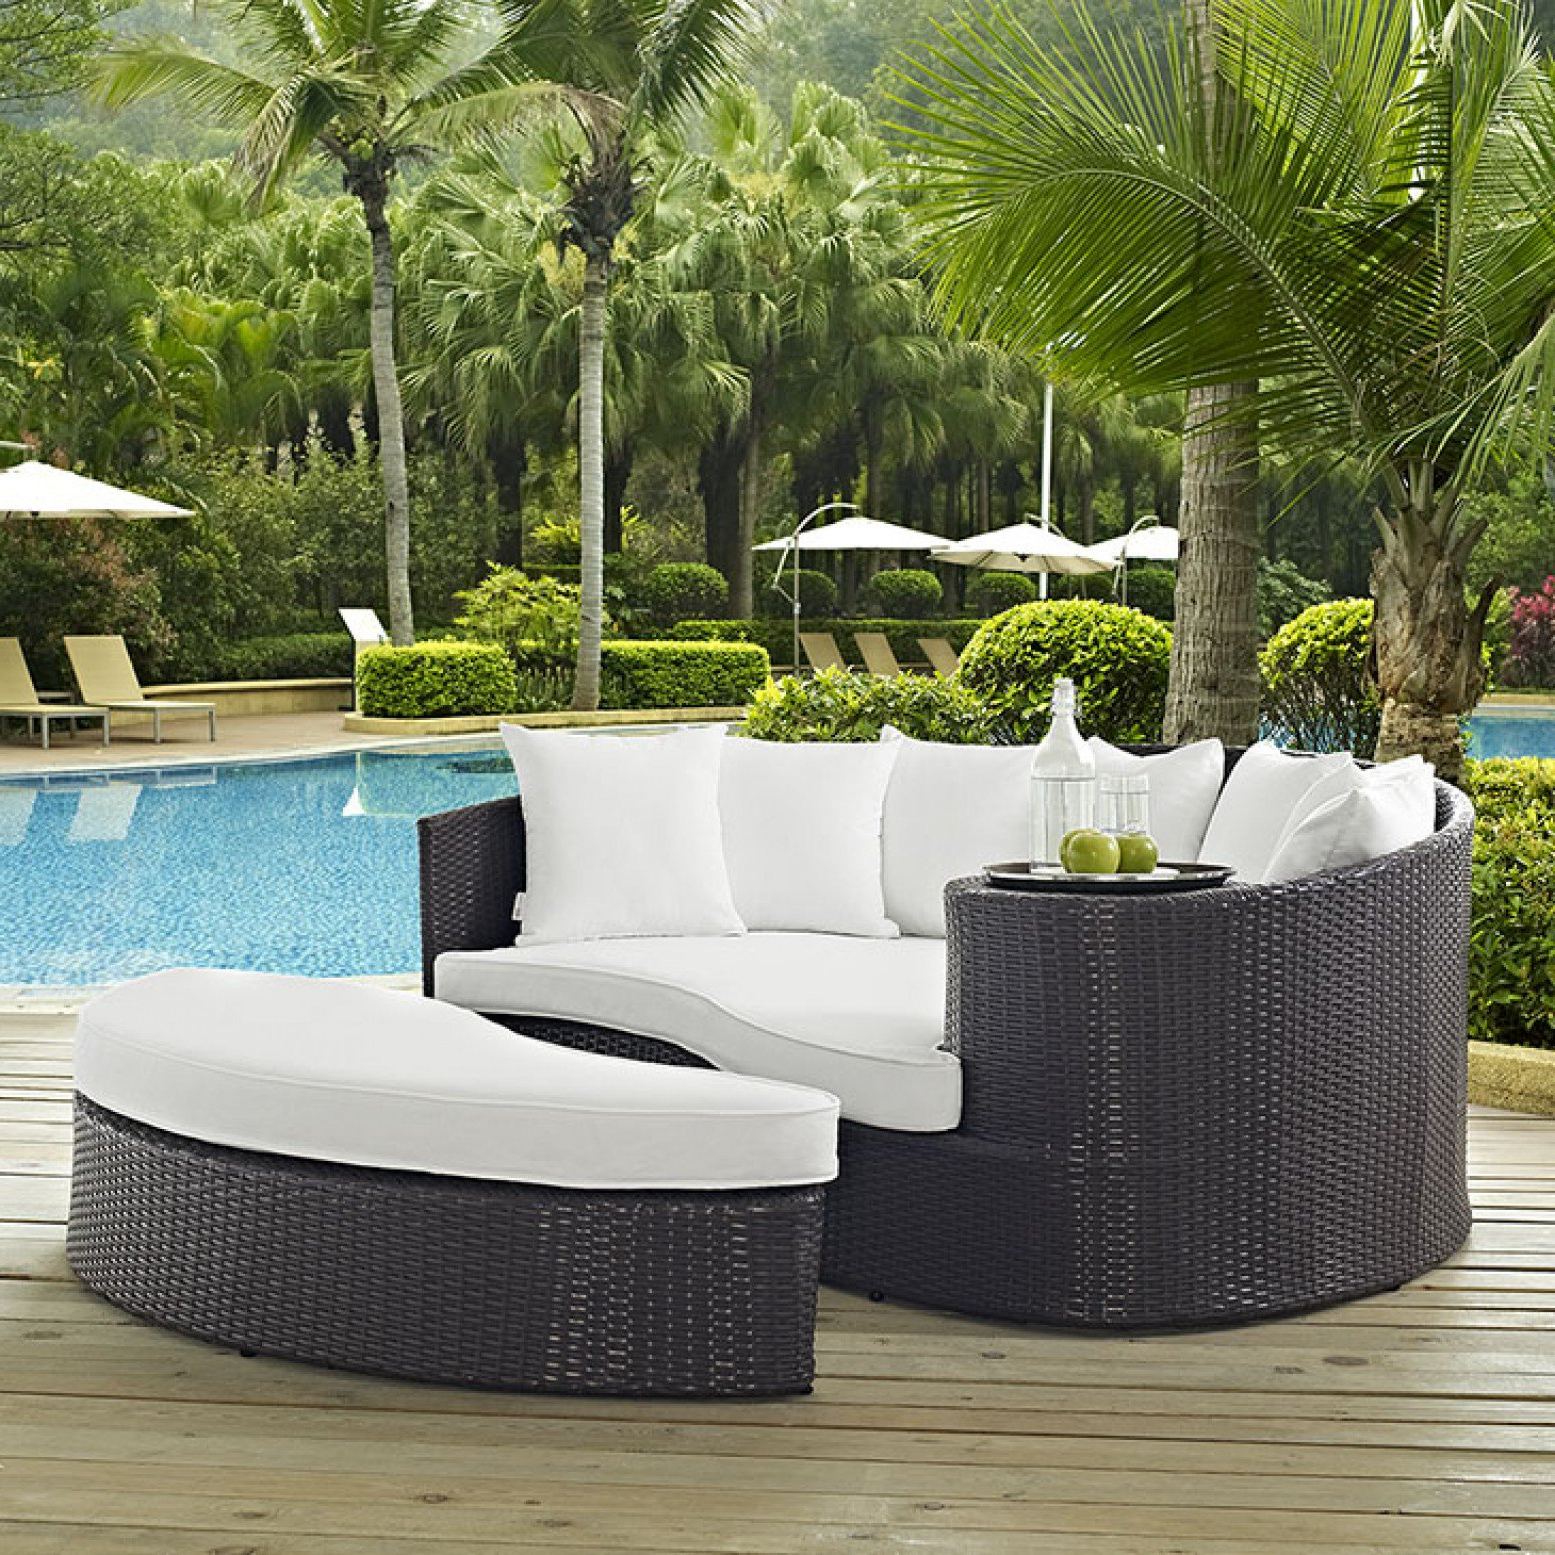 Well Known Furniture: Cool Patio Daybed With Alluring Cushions For For Behling Canopy Patio Daybeds With Cushions (View 18 of 25)